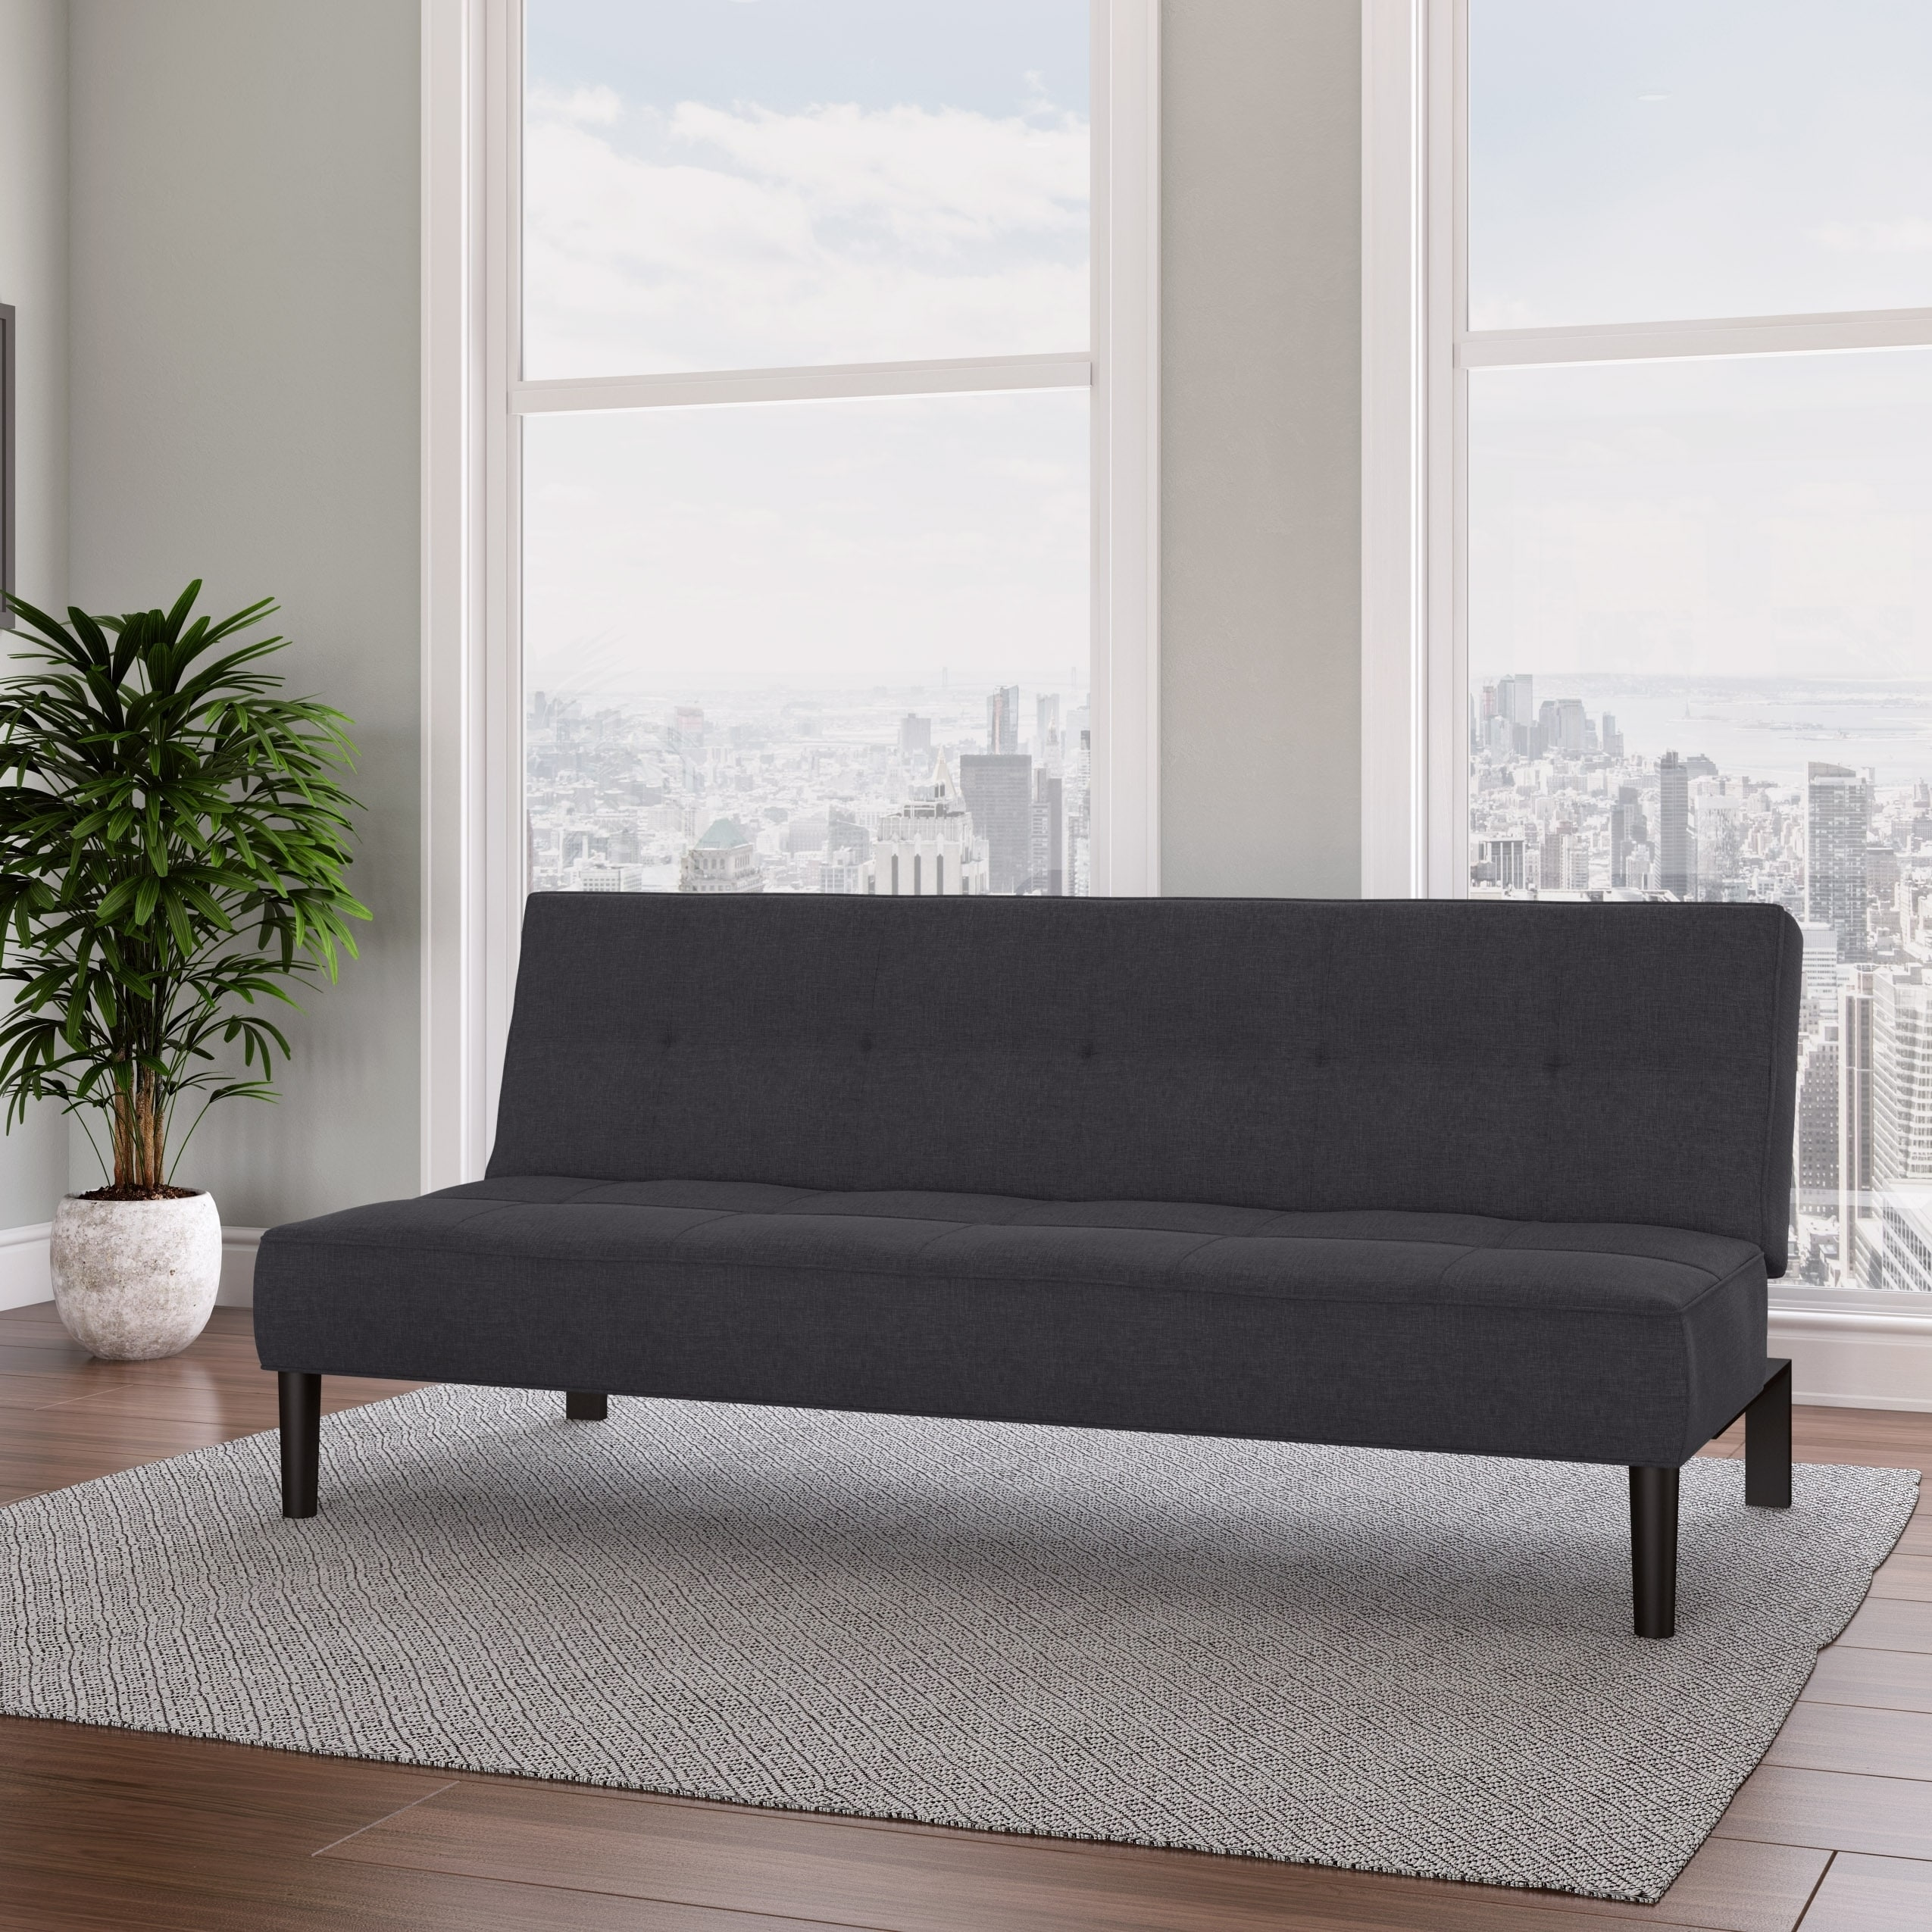 Futon Convertible 1 Place Corliving Convertible Futon Sofa Bed With Textured Mattress